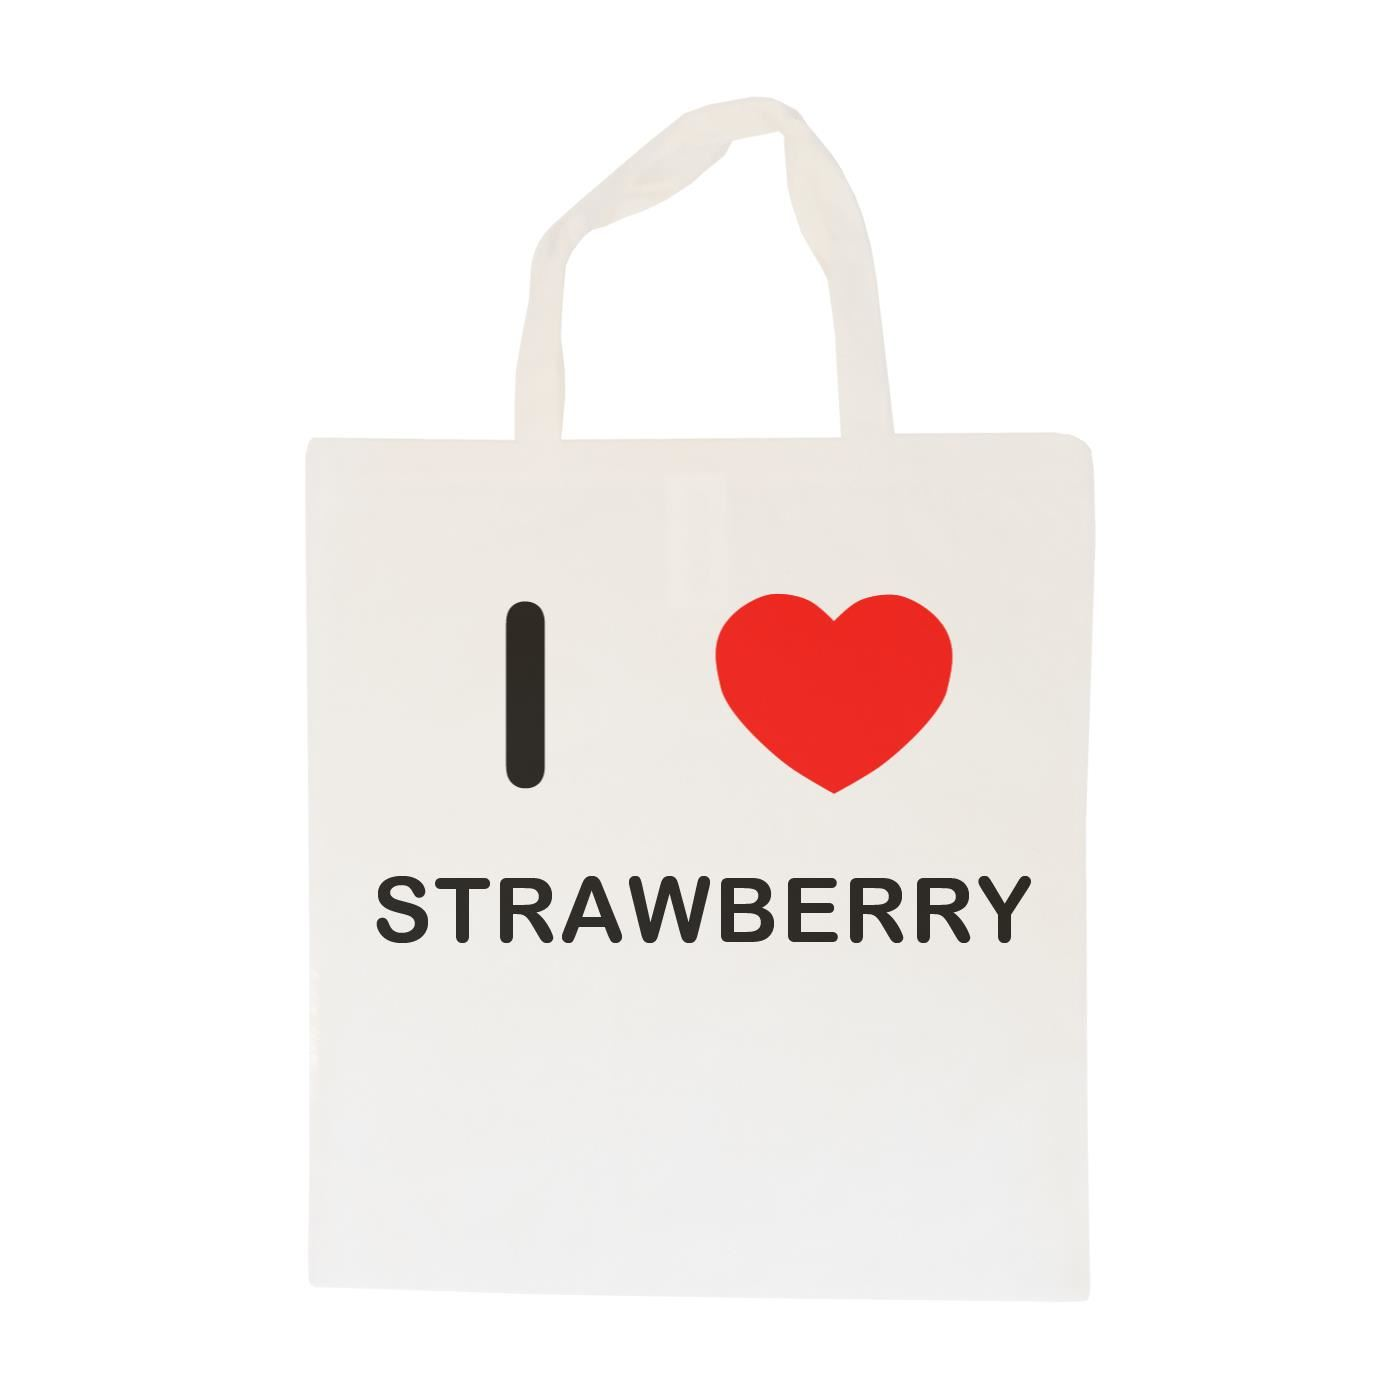 I Love Strawberry - Cotton Bag | Size choice Tote, Shopper or Sling